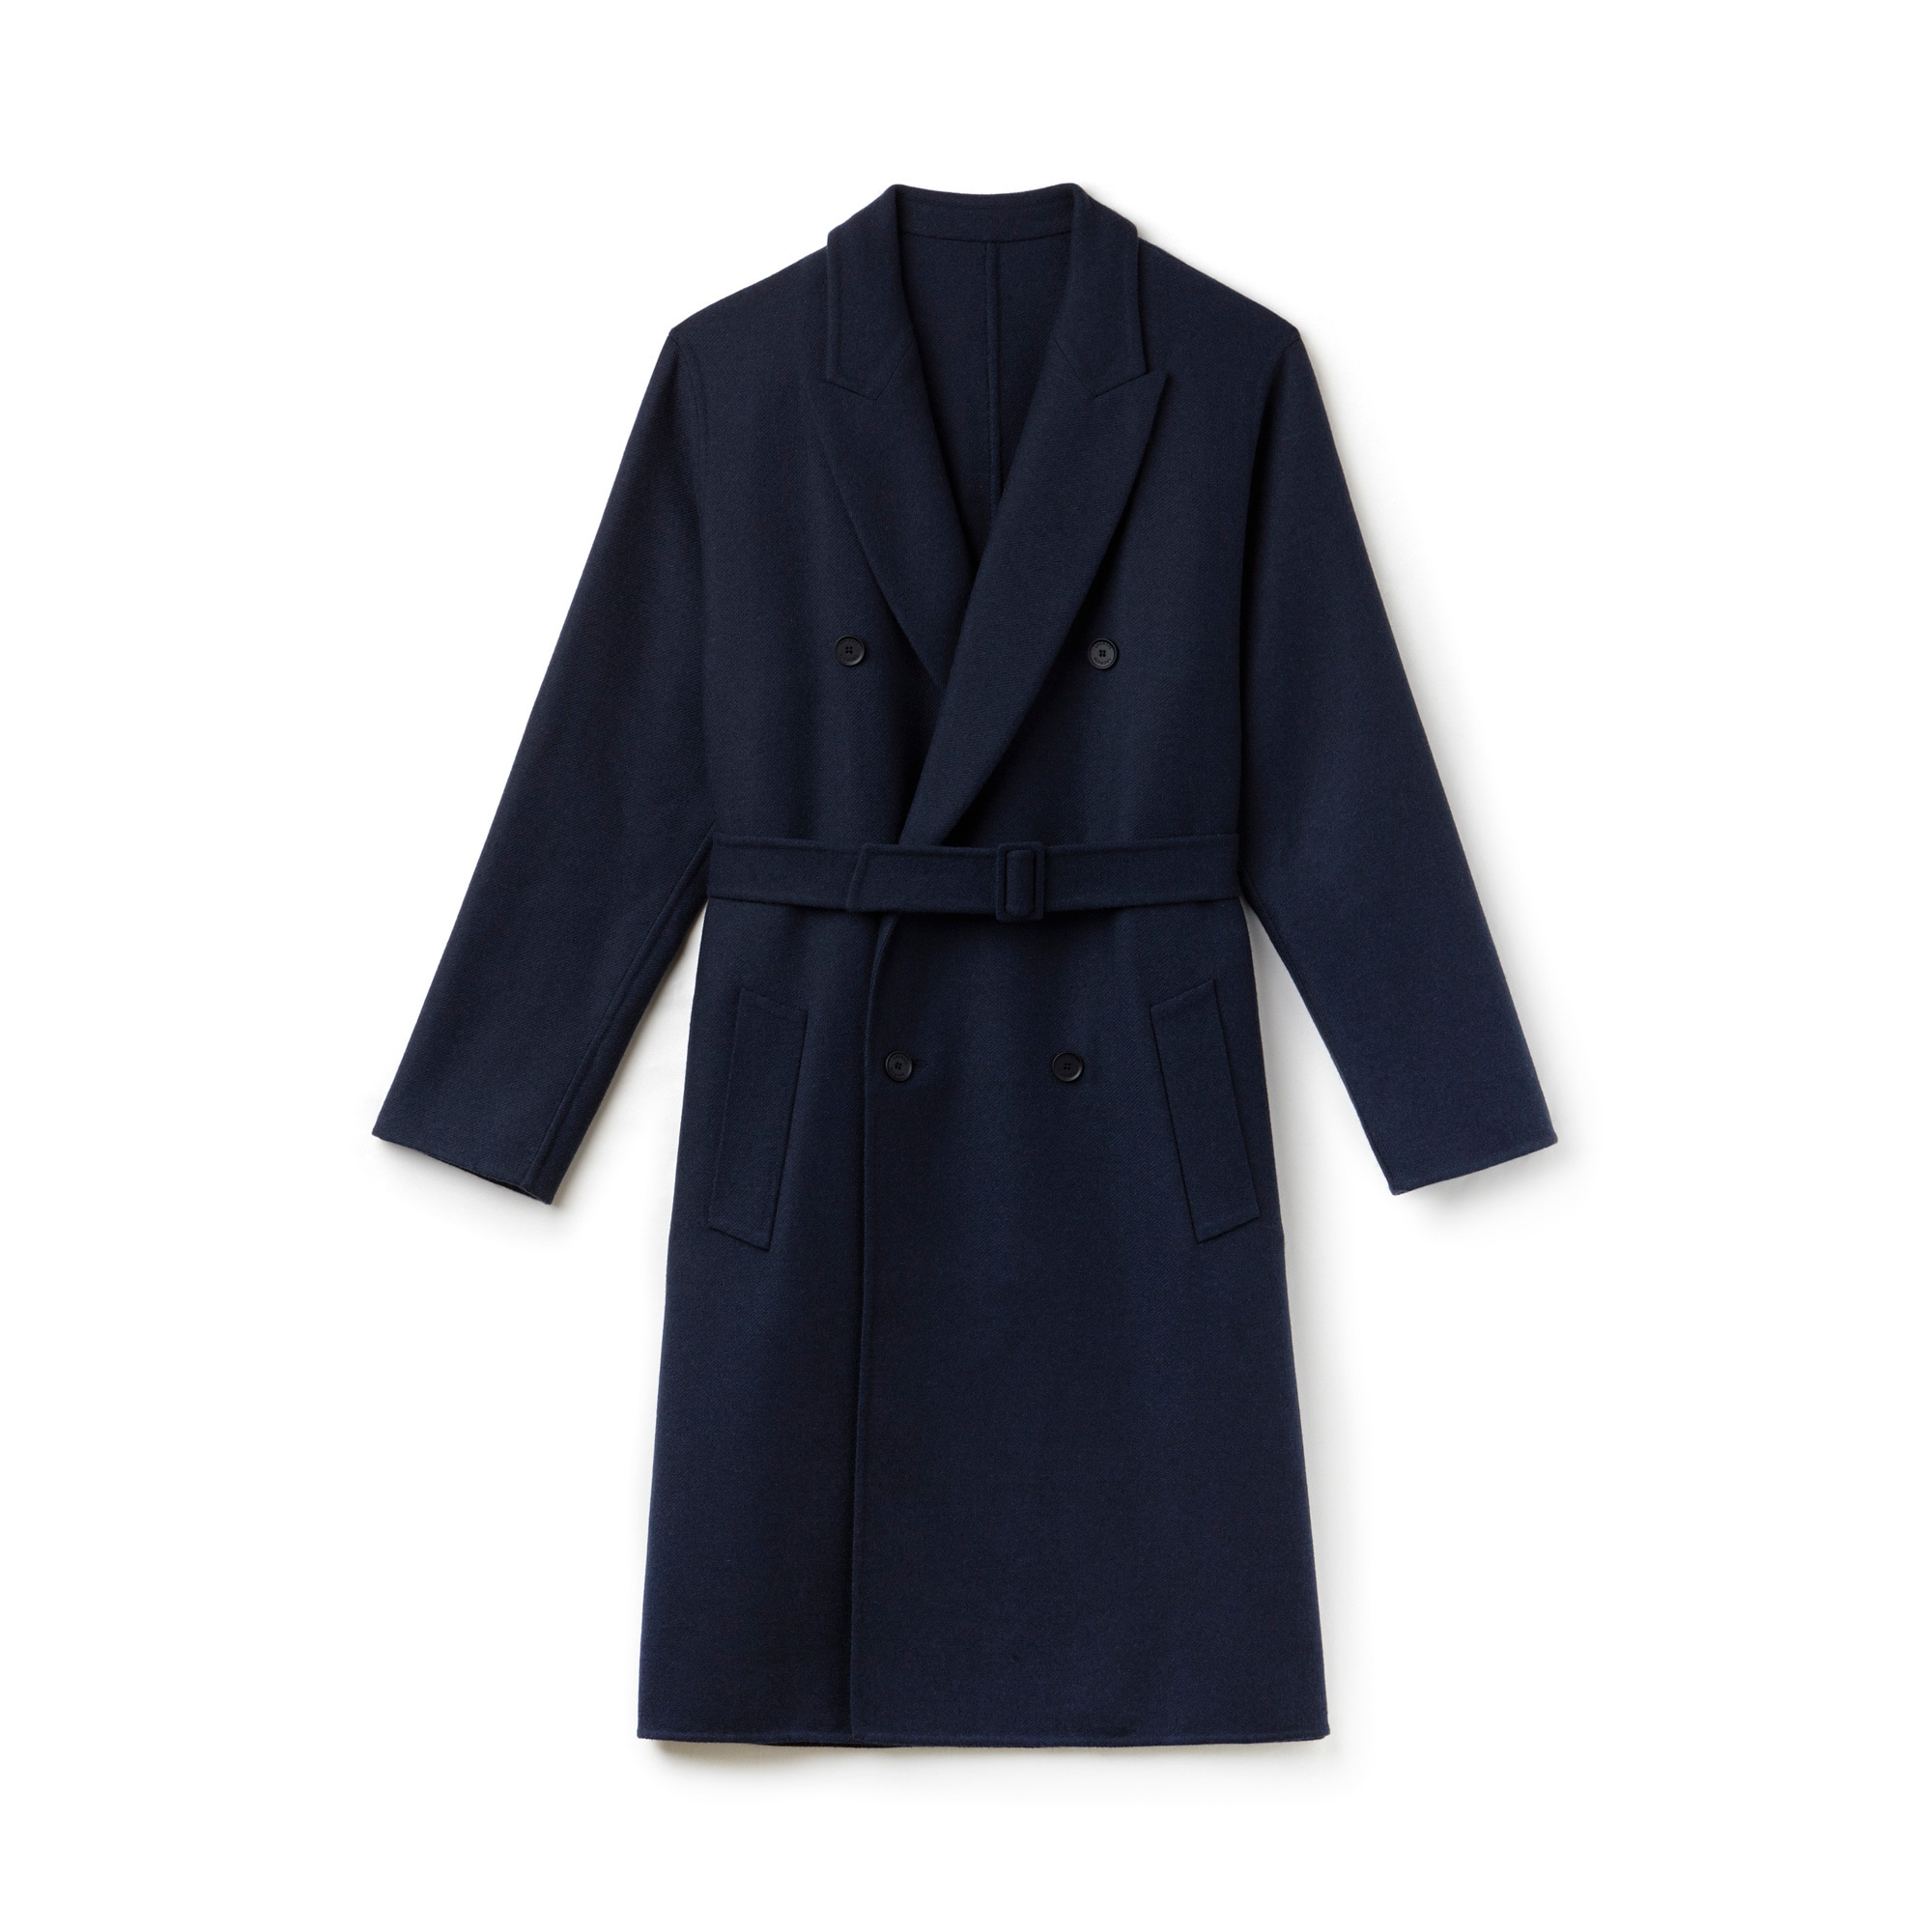 Unisex Fashion Show Wraparound Belted Wool Coat